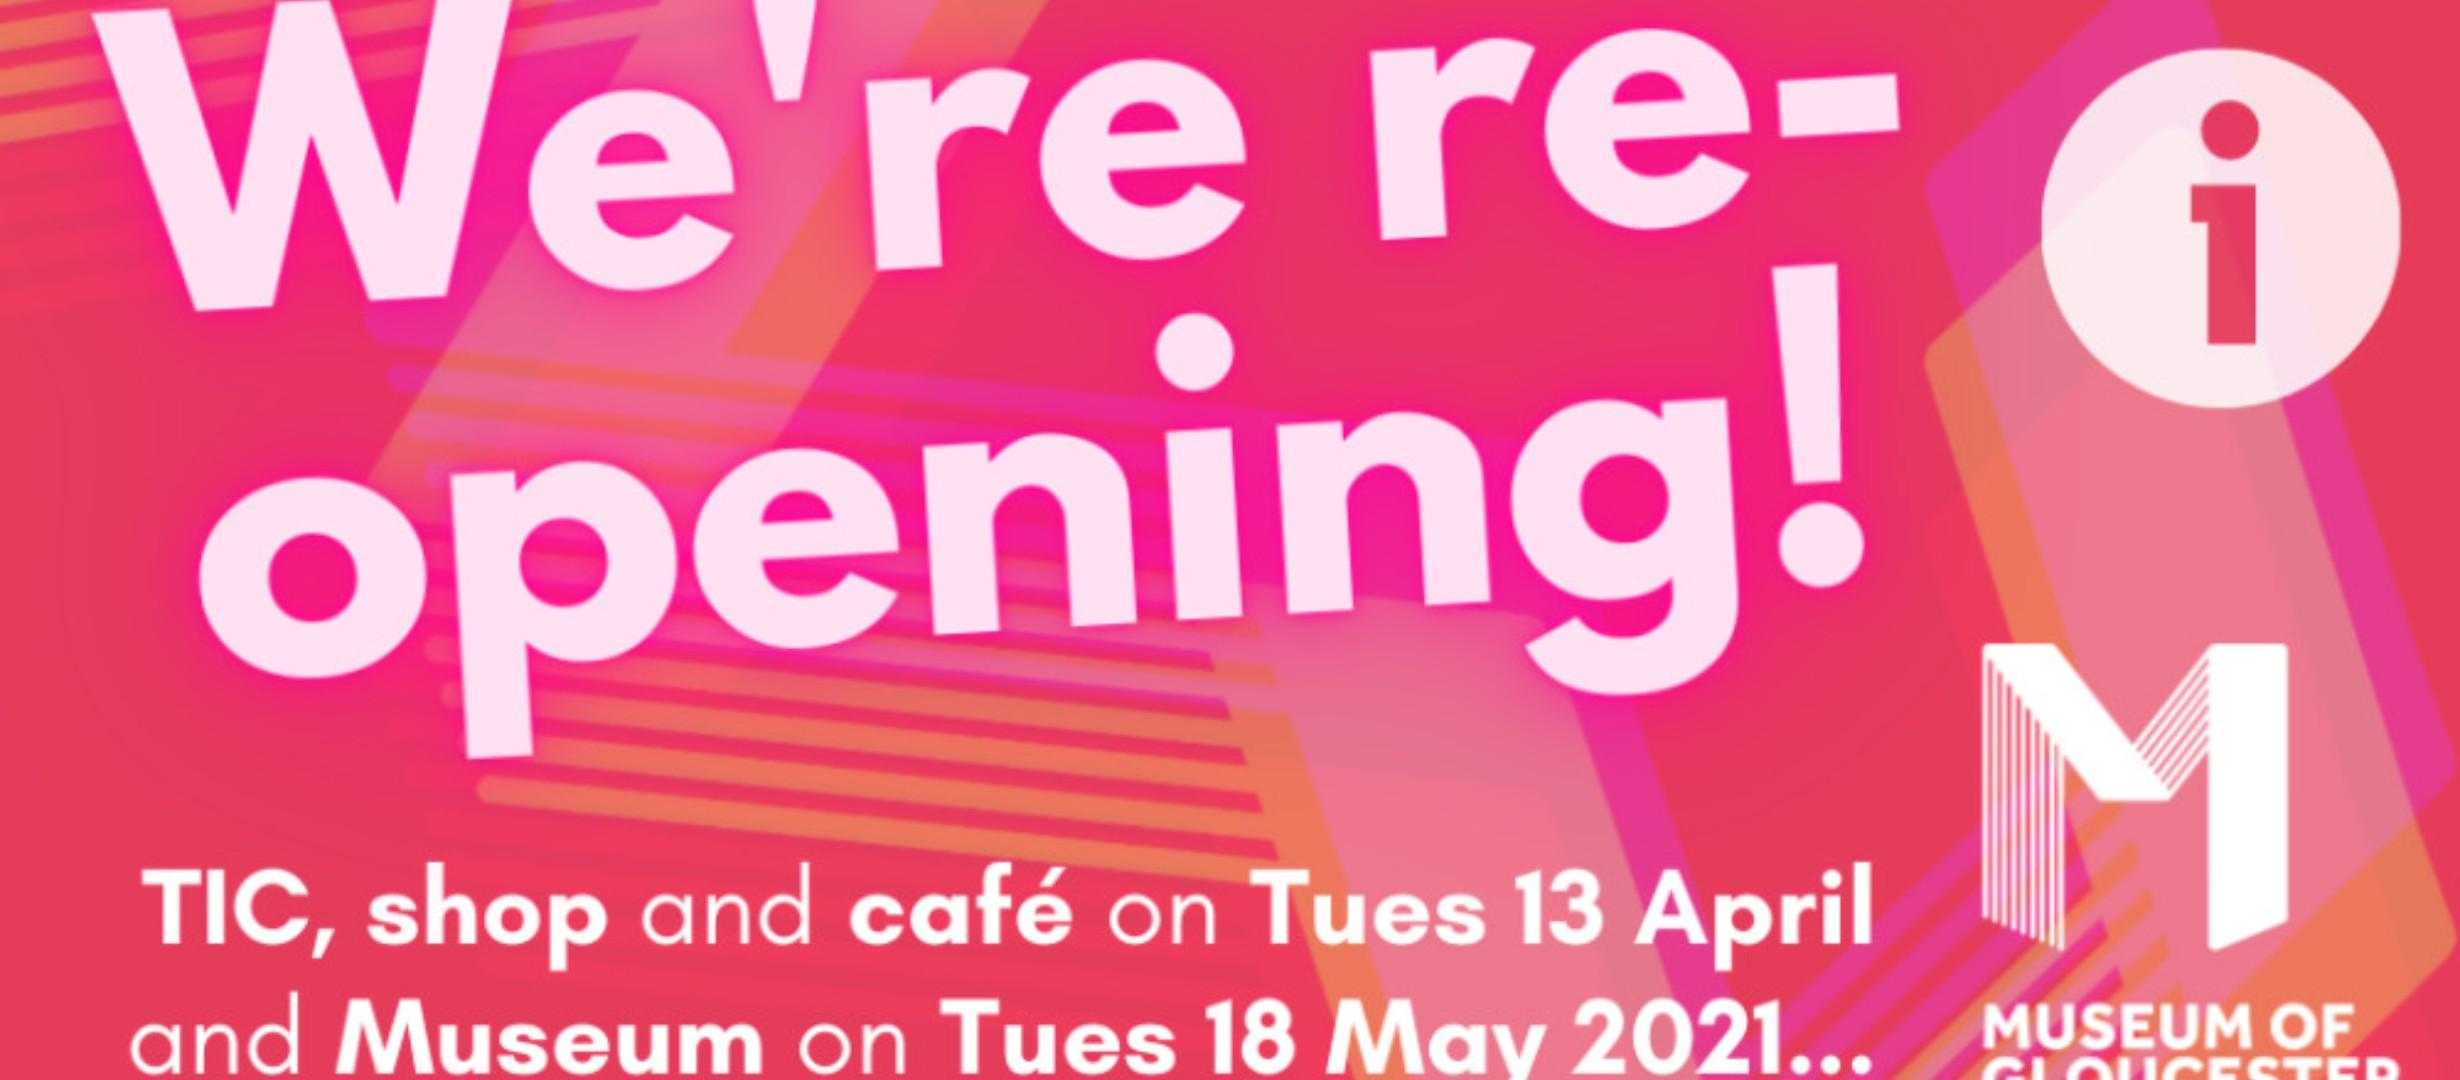 text reads 'we're reopening! TIC, shop and cafe on Tues 13 April, and Museum on Tues 18 May 2021...'